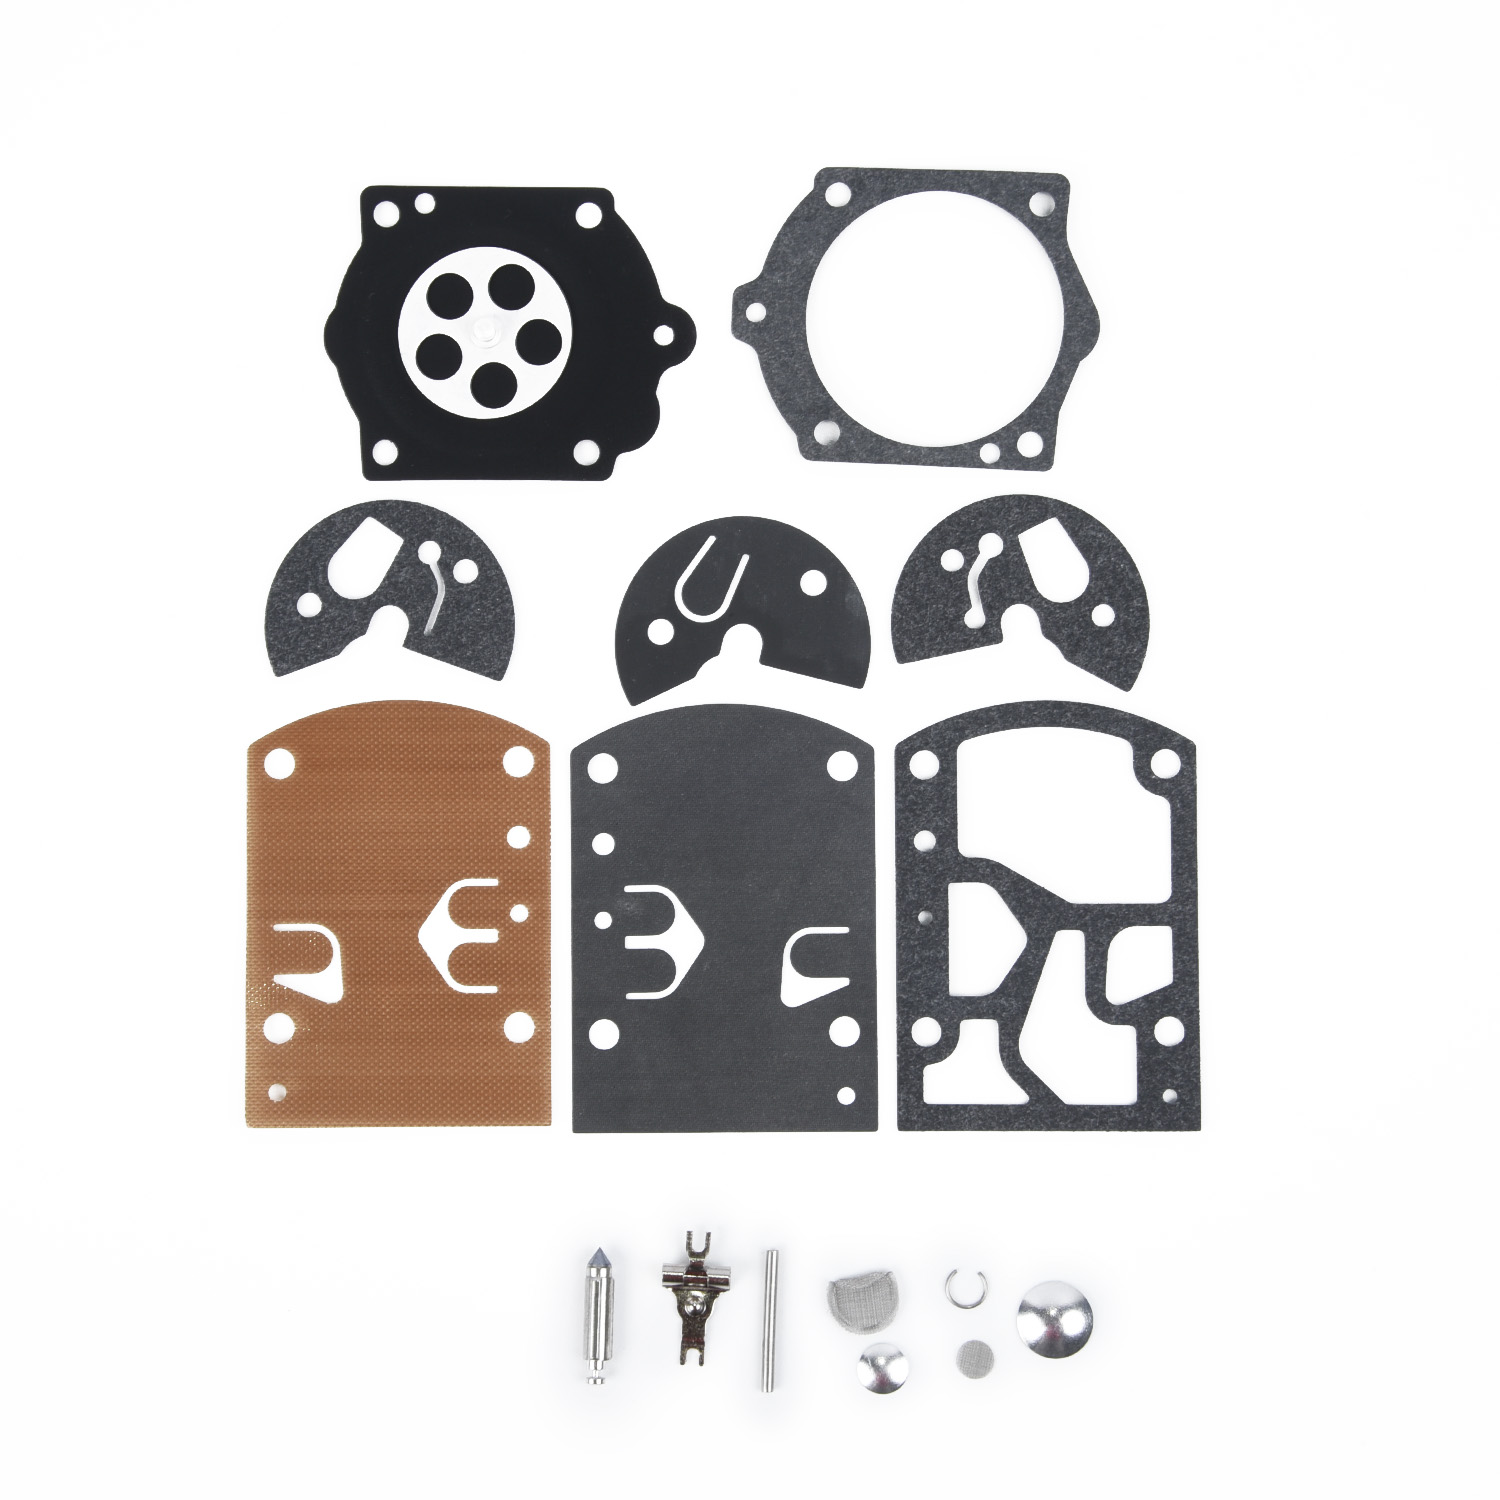 Carburetor Repair Rebuild Kit For Homelite 650 750 FP100 Walbro K10-WB Chainsaw